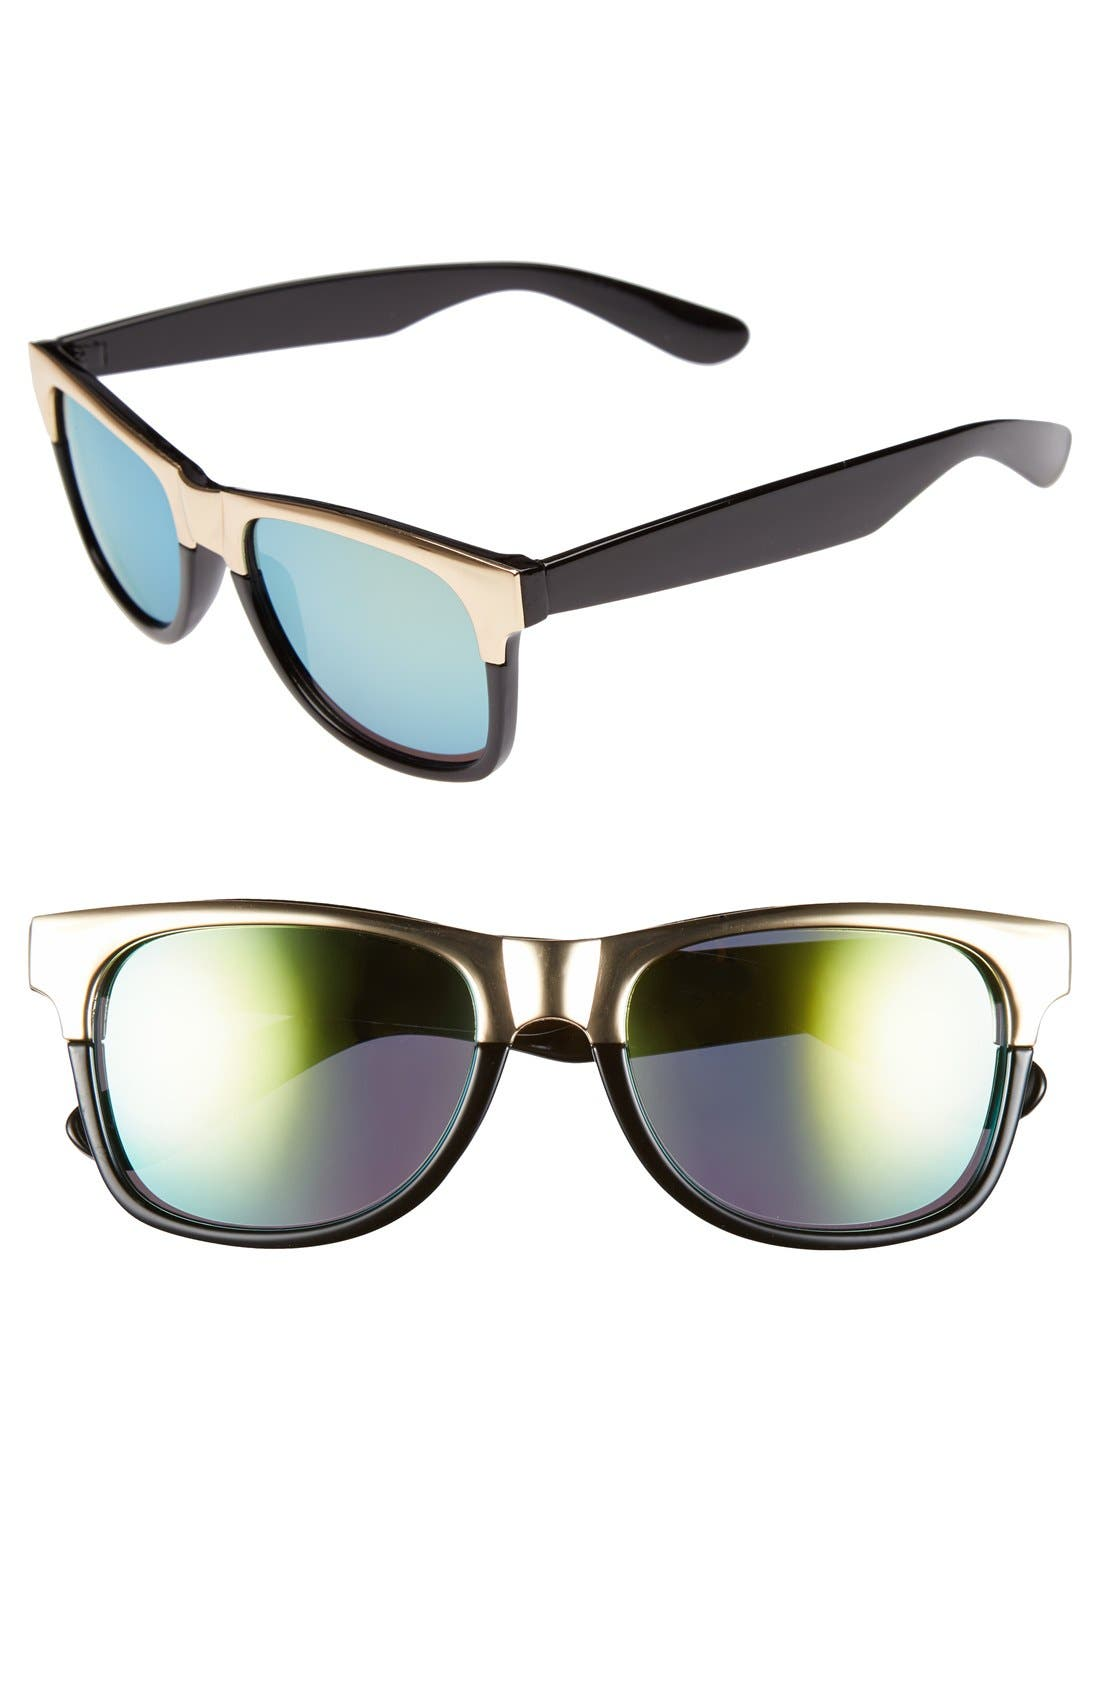 Main Image - FE NY 54mm Metallic Browline Sunglasses